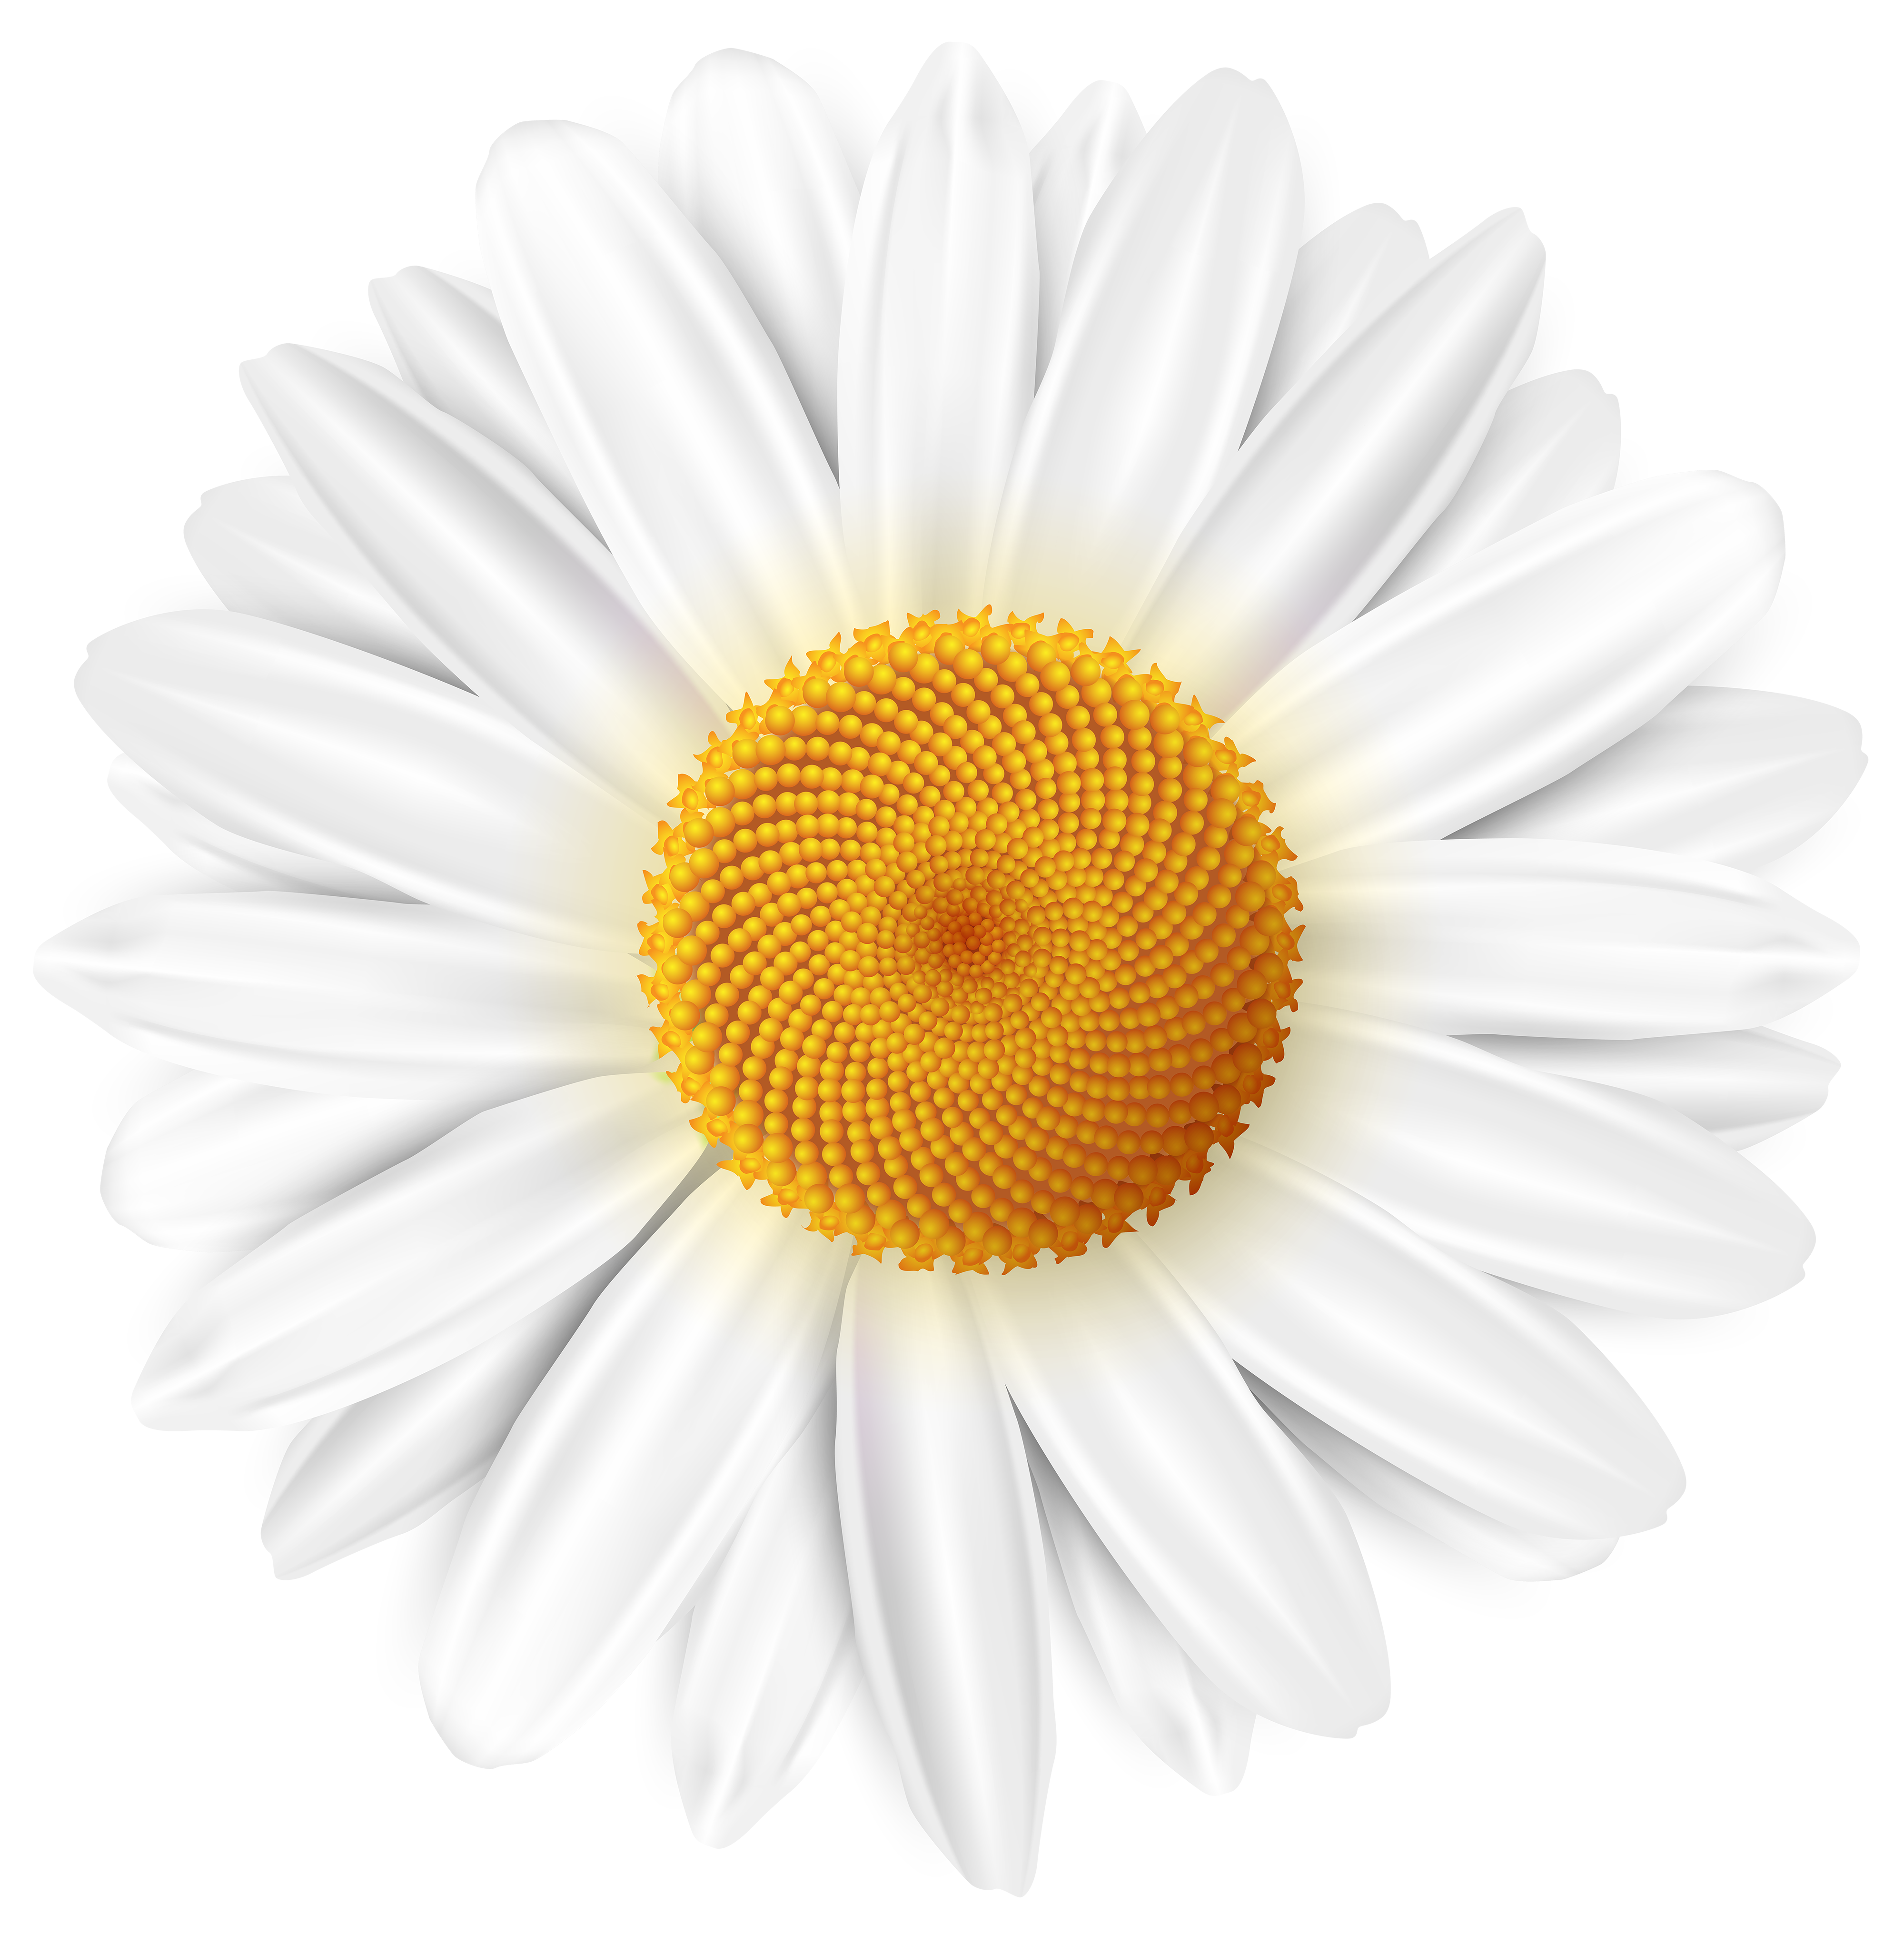 Daisy clipart transparent background. White png clip art